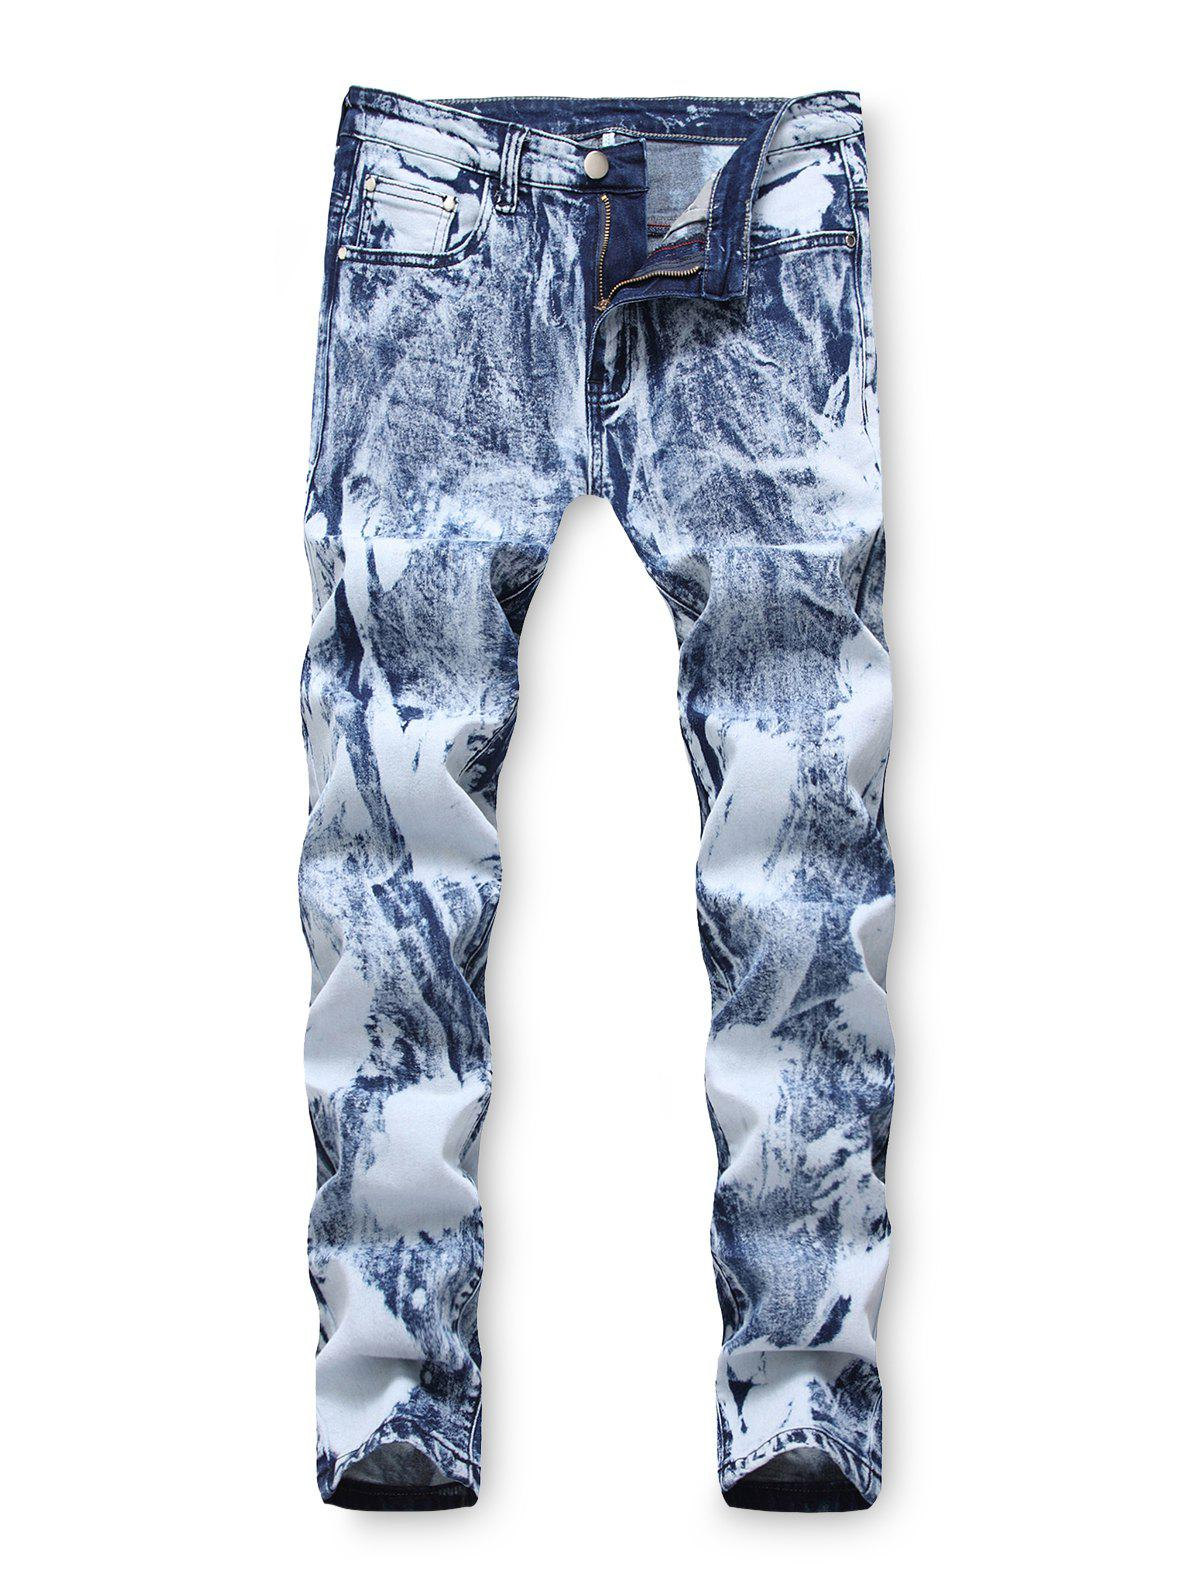 Shop Zip Fly Casual Printed Jeans